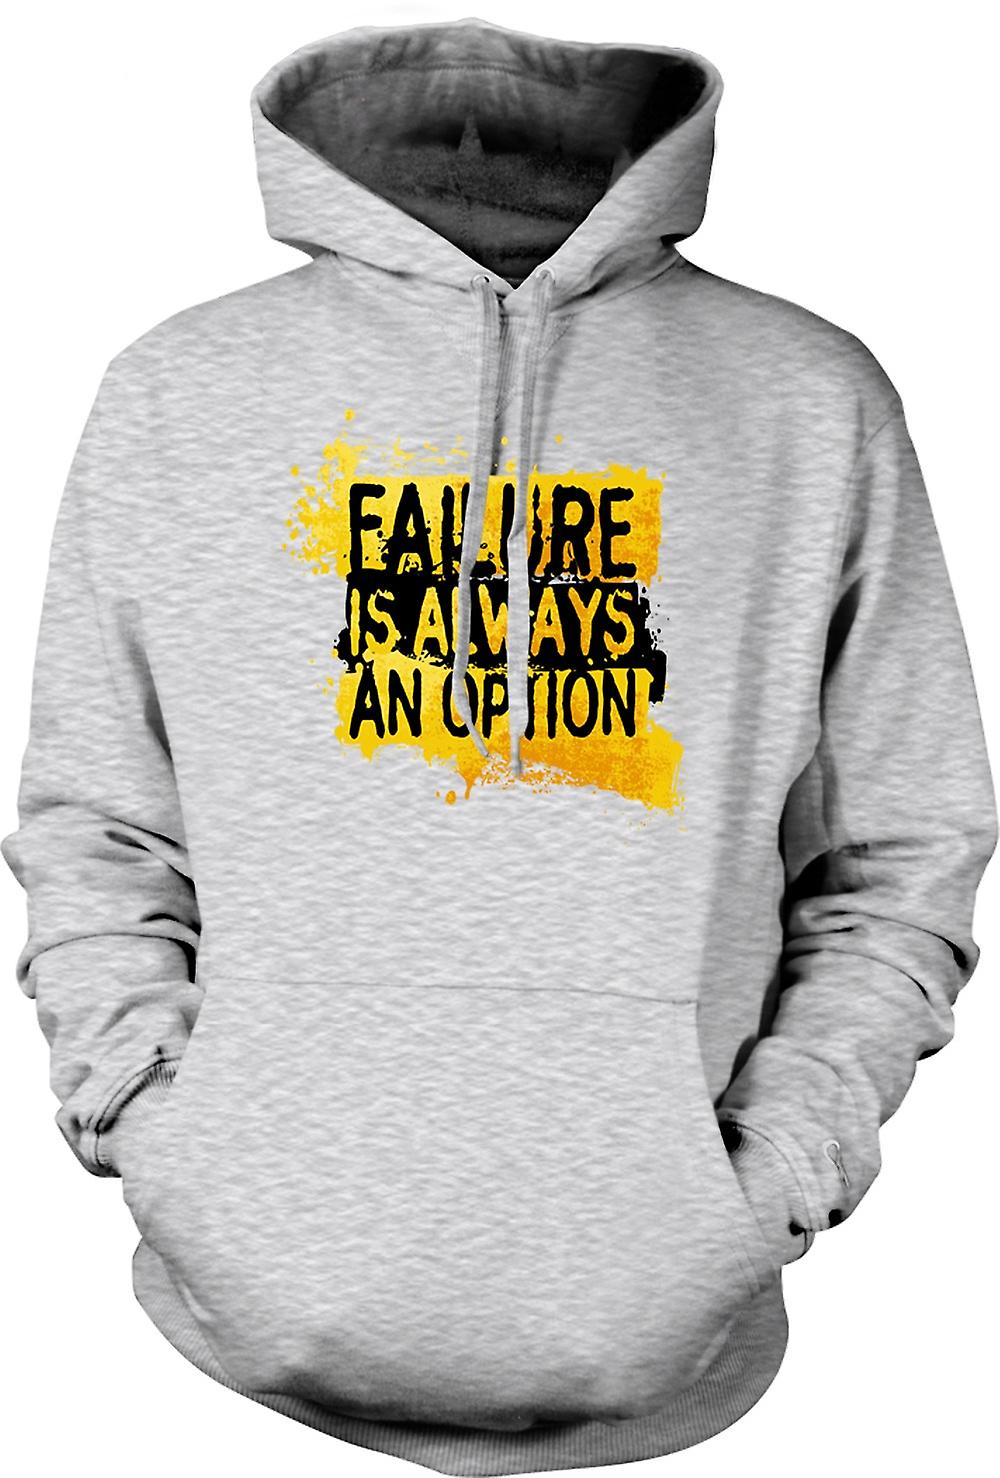 Mens Hoodie - Failure is always An Option - Mythbusters